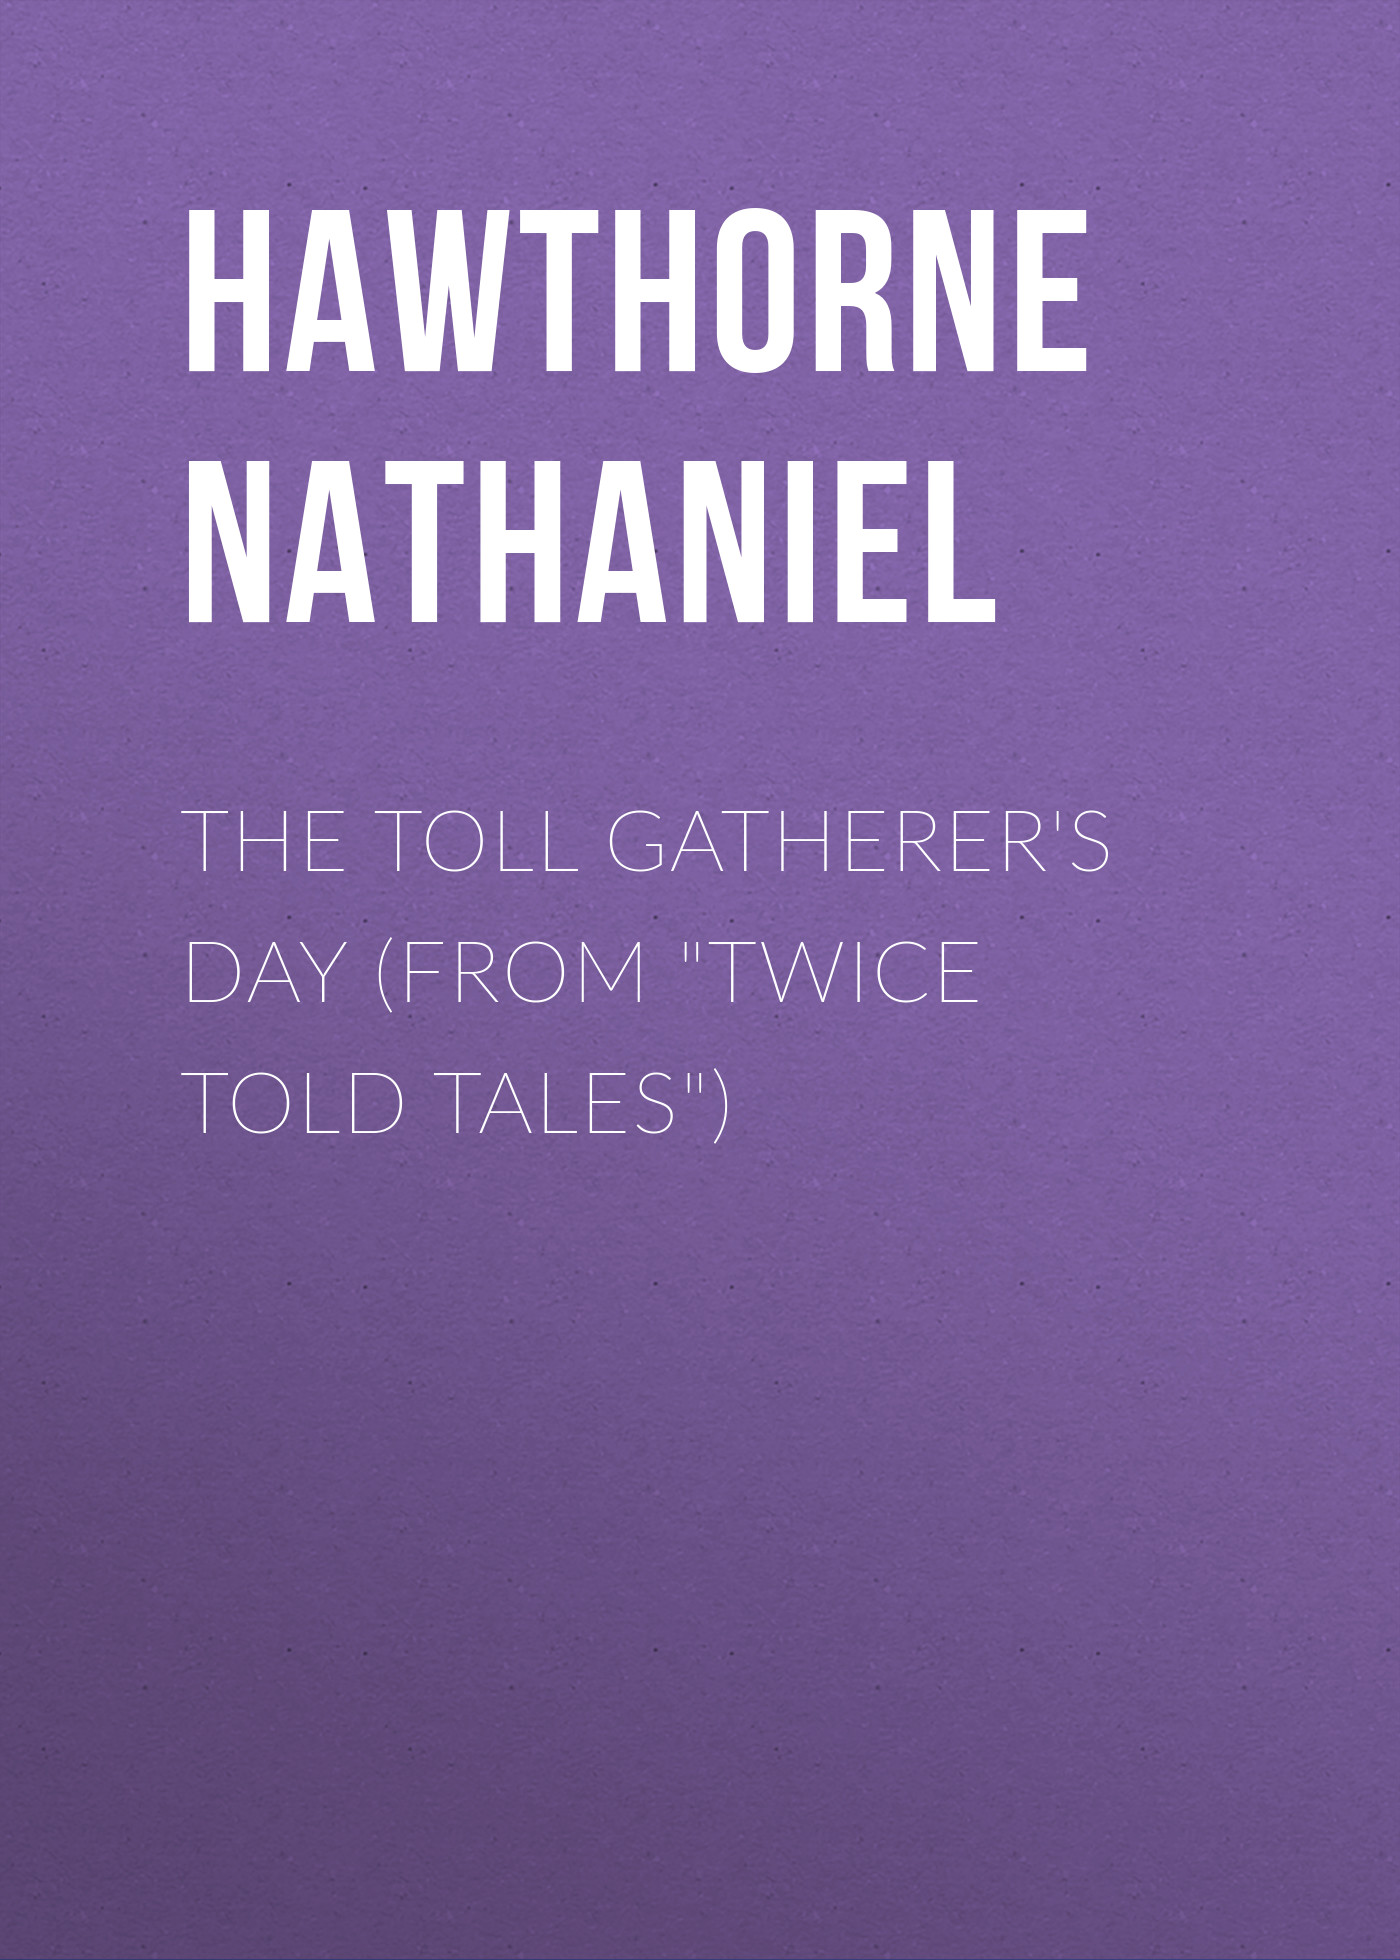 Hawthorne Nathaniel The Toll Gatherer's Day (From Twice Told Tales) hawthorne nathaniel the threefold destiny from twice told tales